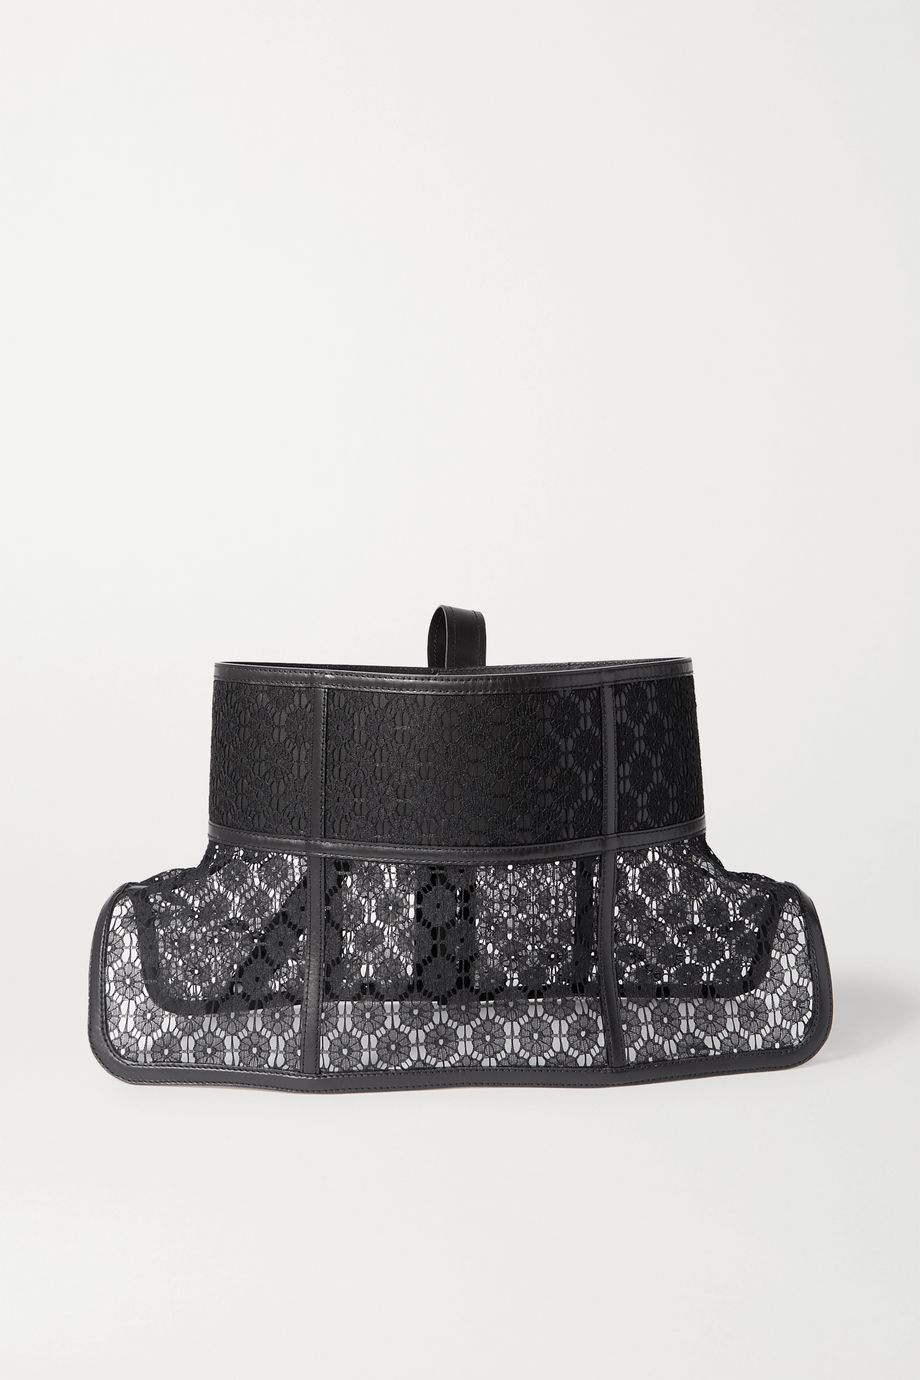 Loewe Obi lace and leather waist belt